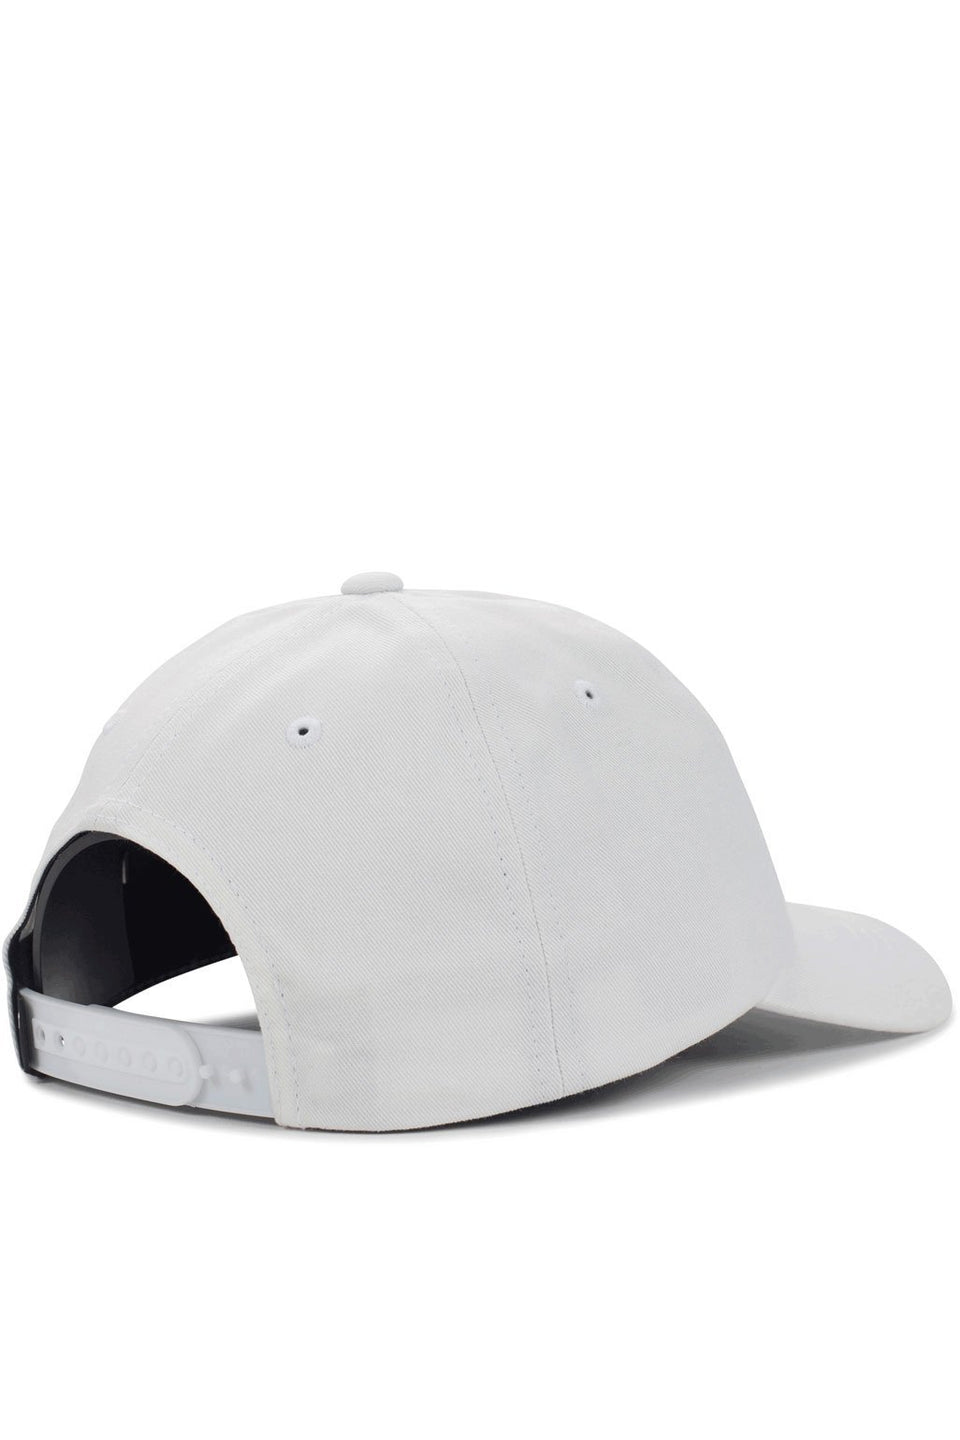 Jones Dad Hat-HEADWEAR-The Hundreds UK